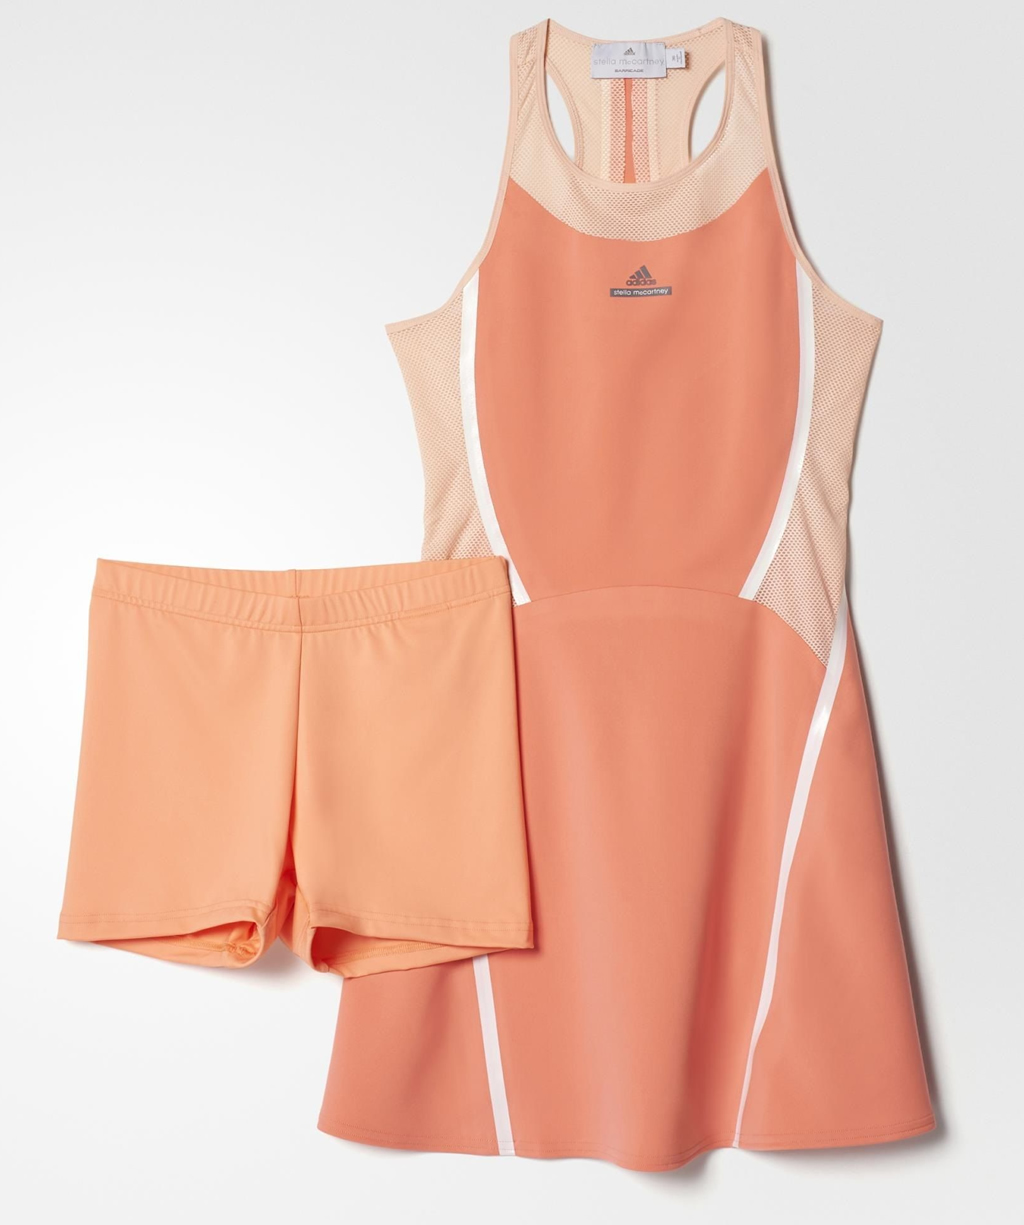 Pink Ladies Tennis Dress by Adidas